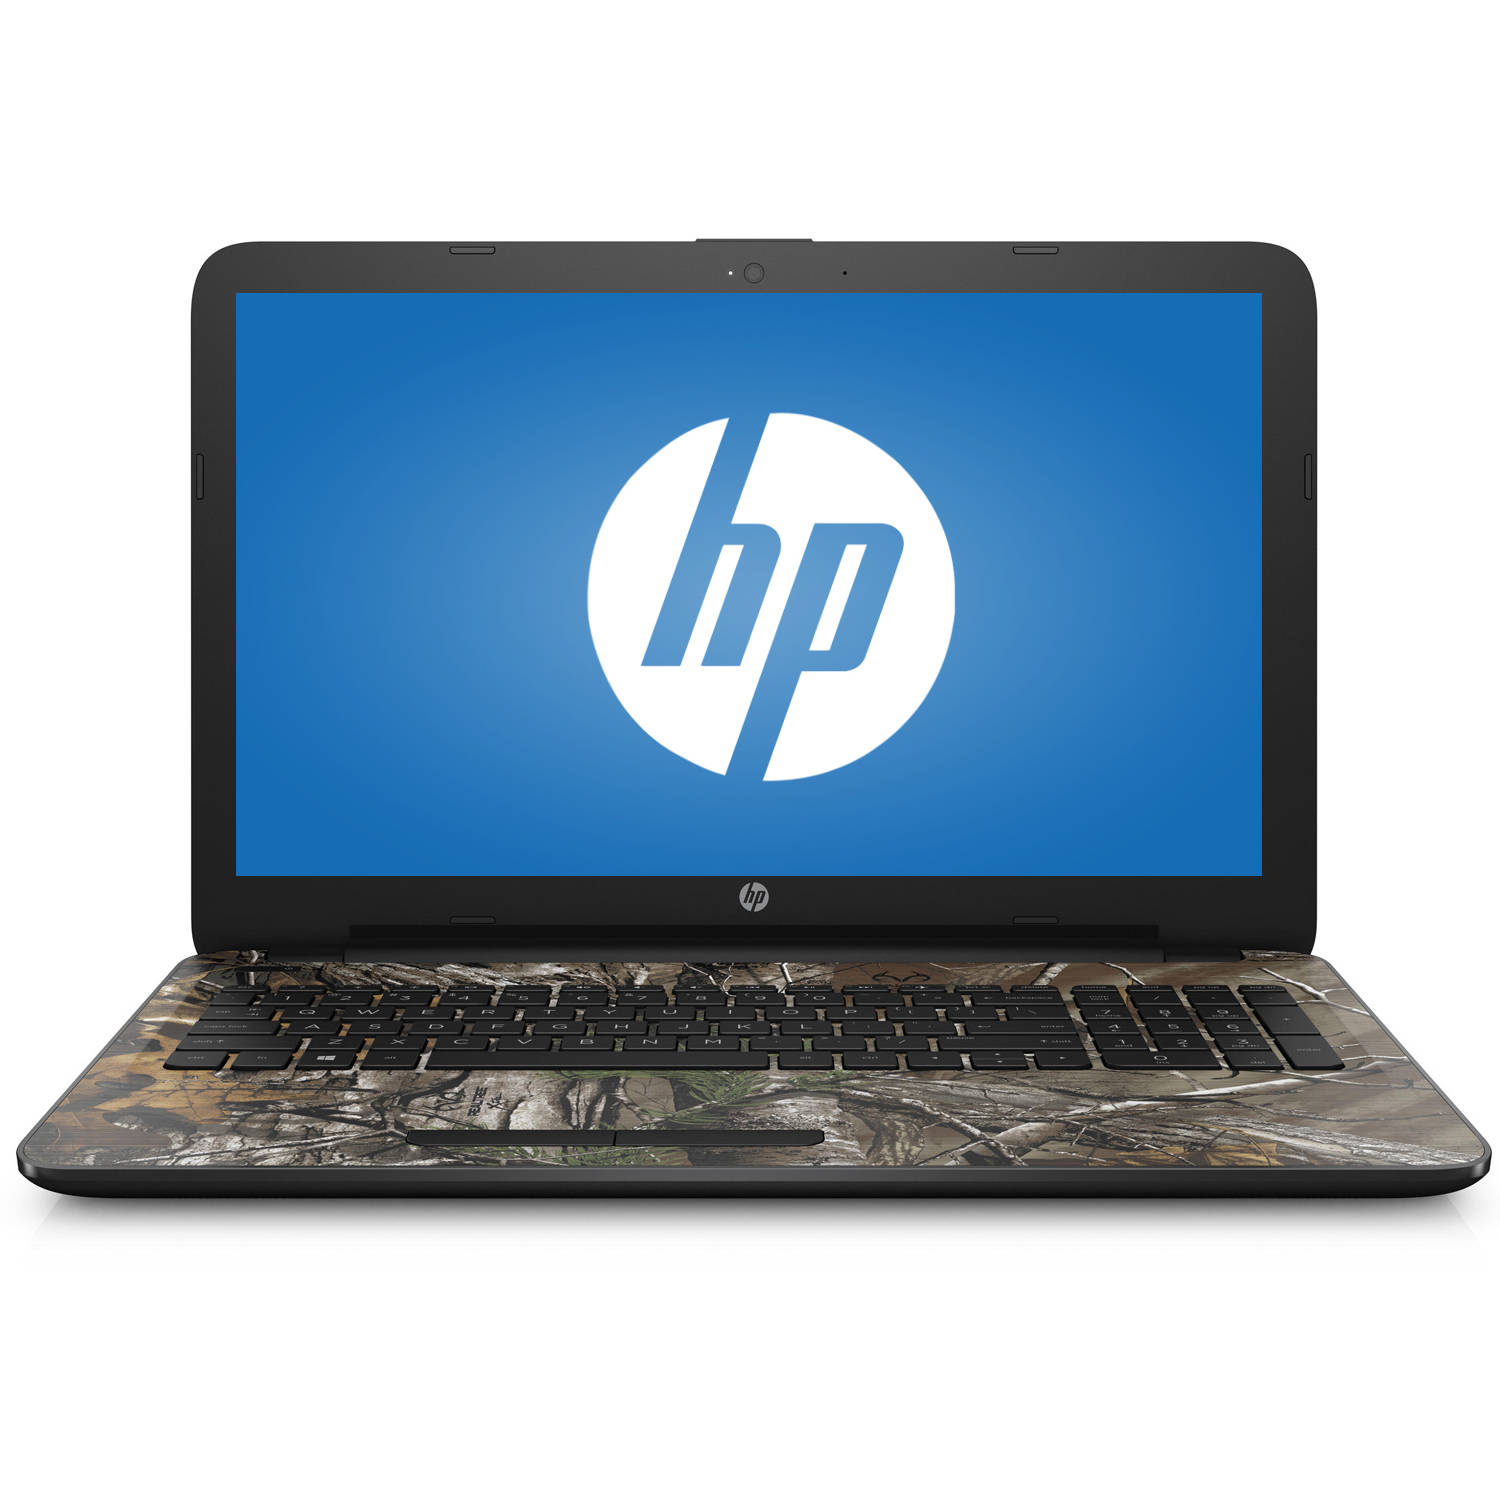 "Refurbished HP 15-bn070wm 15.6"" Laptop, Windows 10 Home, Intel Pentium N3710 Quad-Core Processor, 4GB Memory, 1TB Hard Drive"